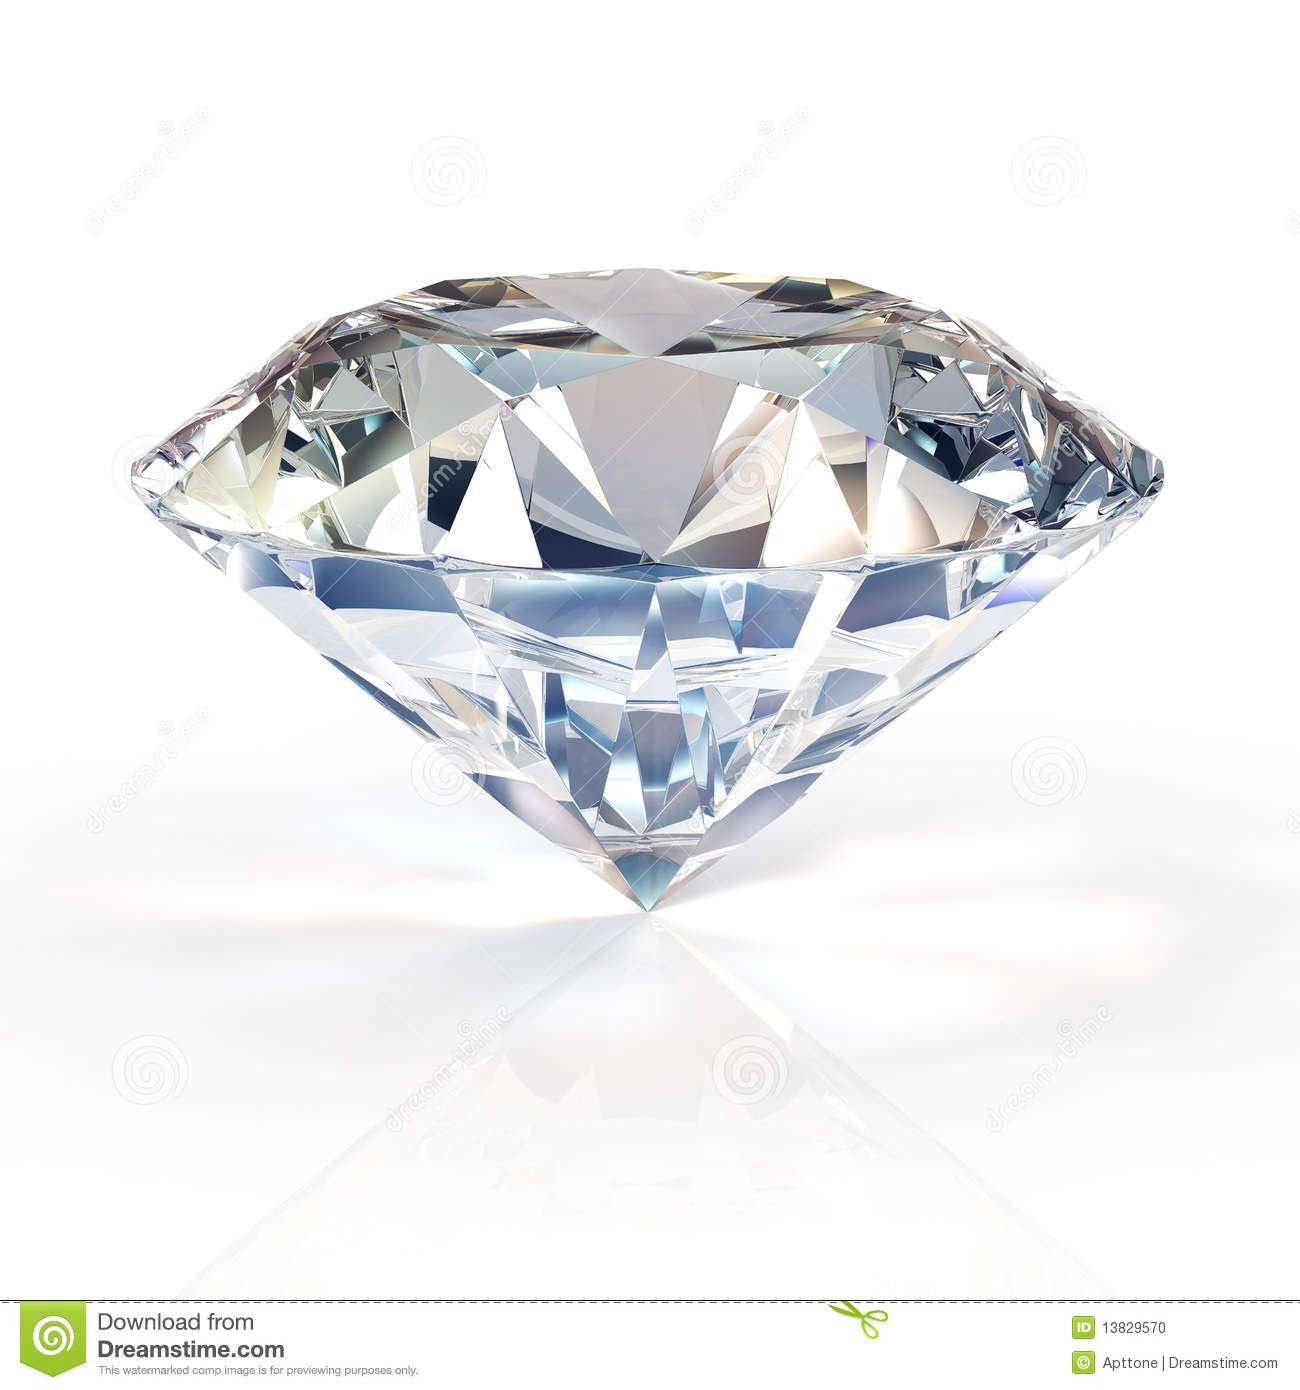 high iphone quality diamond hd com big wallpaper gipsypixel for